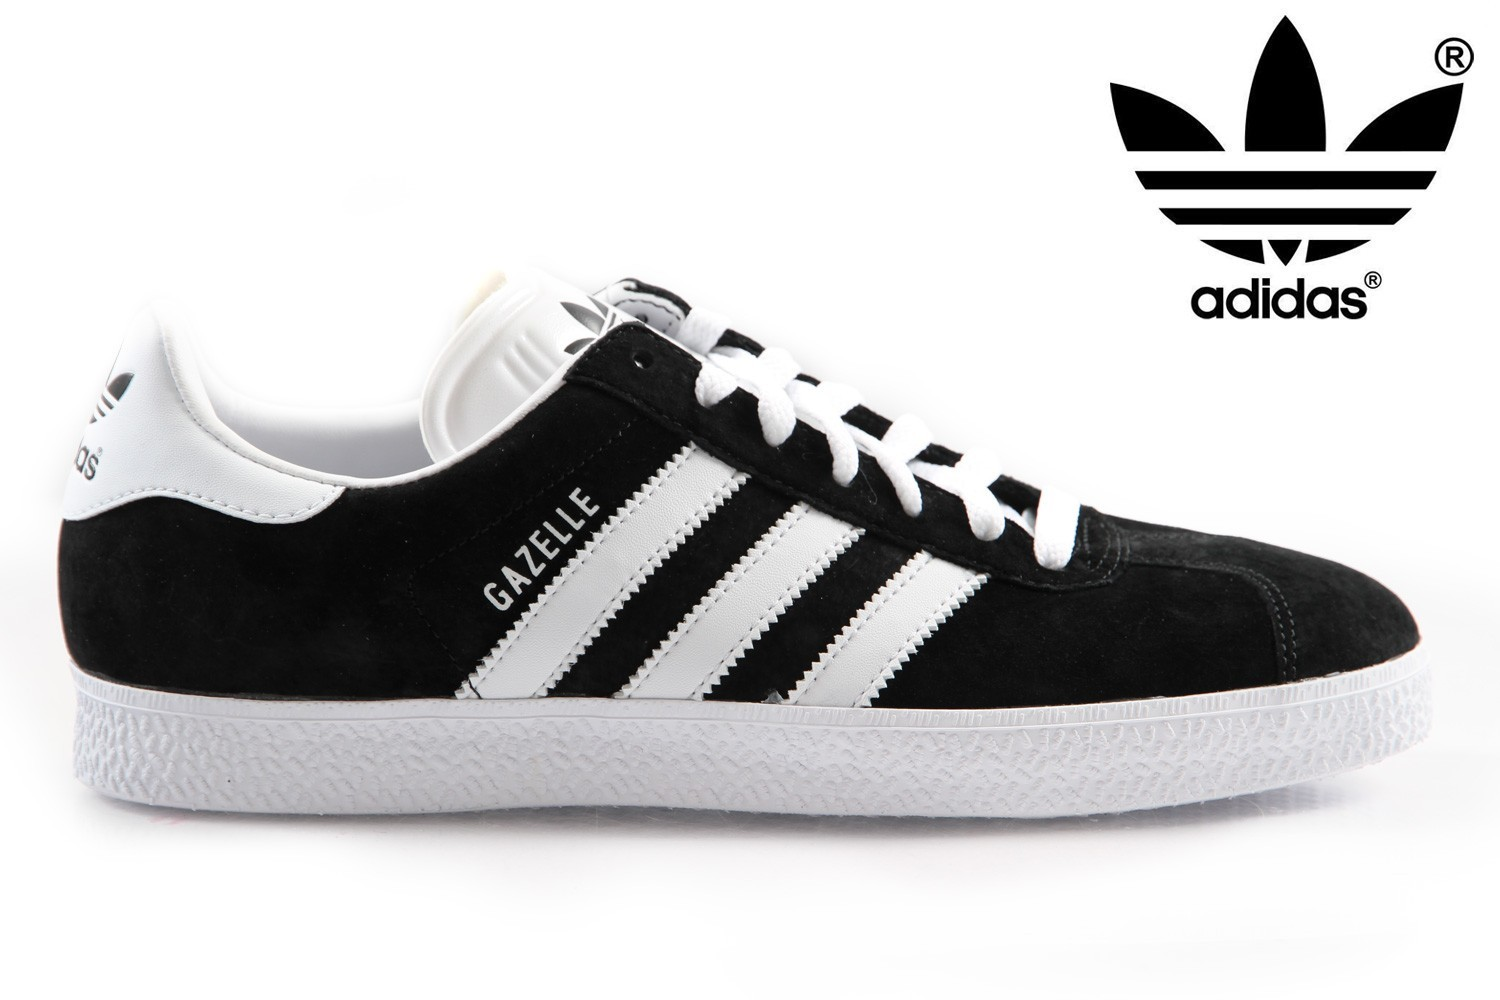 chaussure gazelle homme pas cher Off 51% - www.bashhguidelines.org